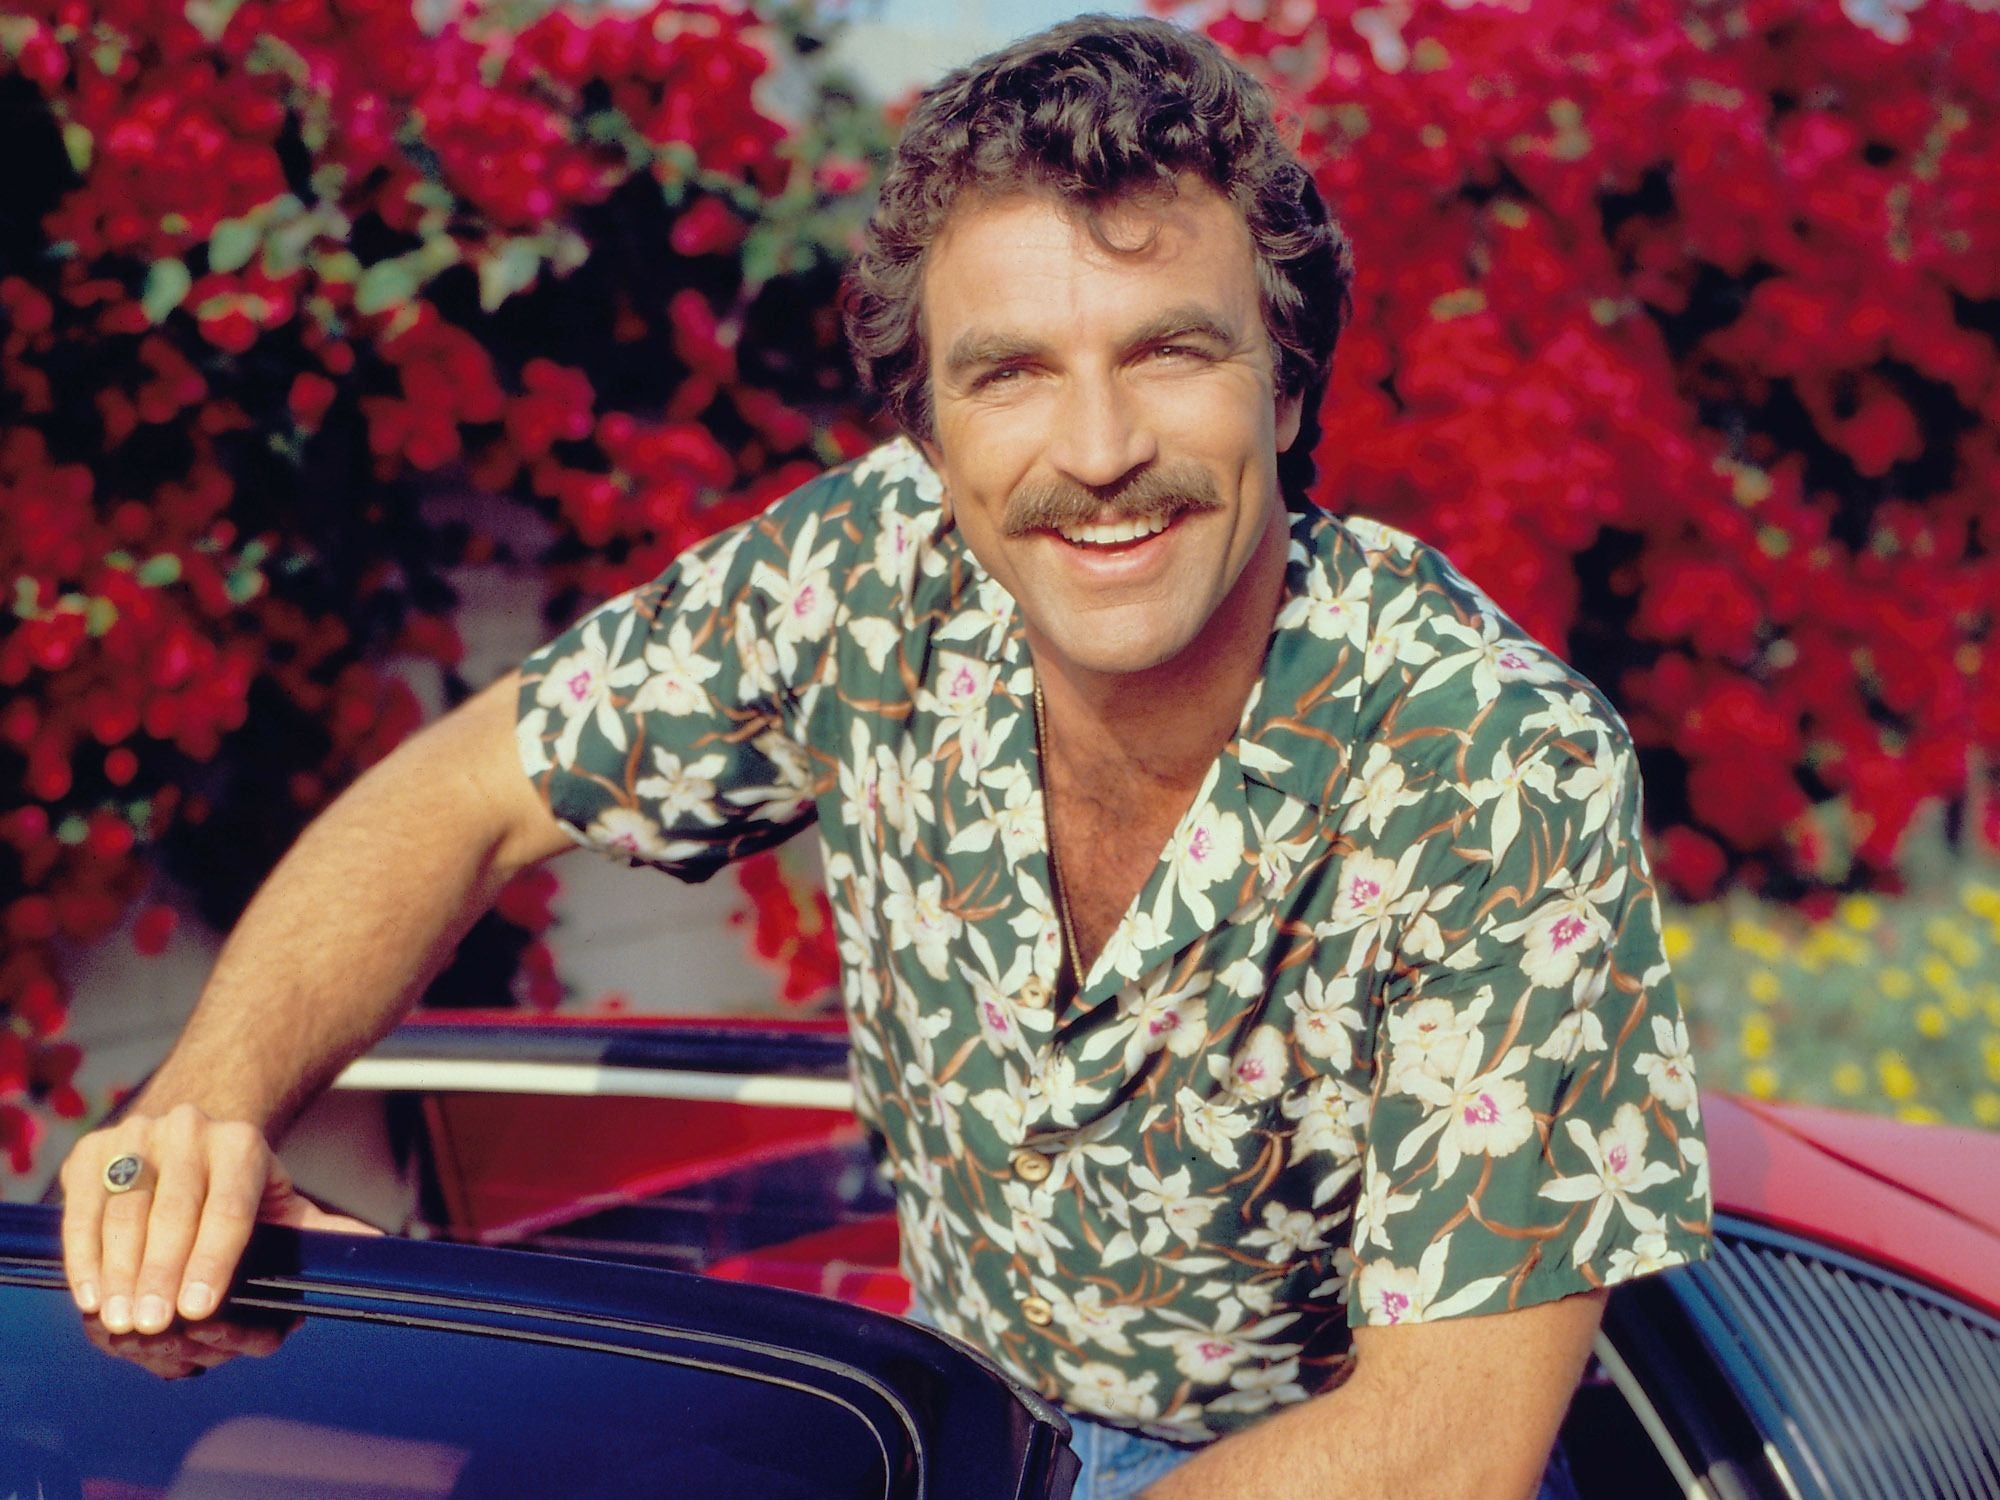 Say Aloha To Summer In These Hawaiian Shirts